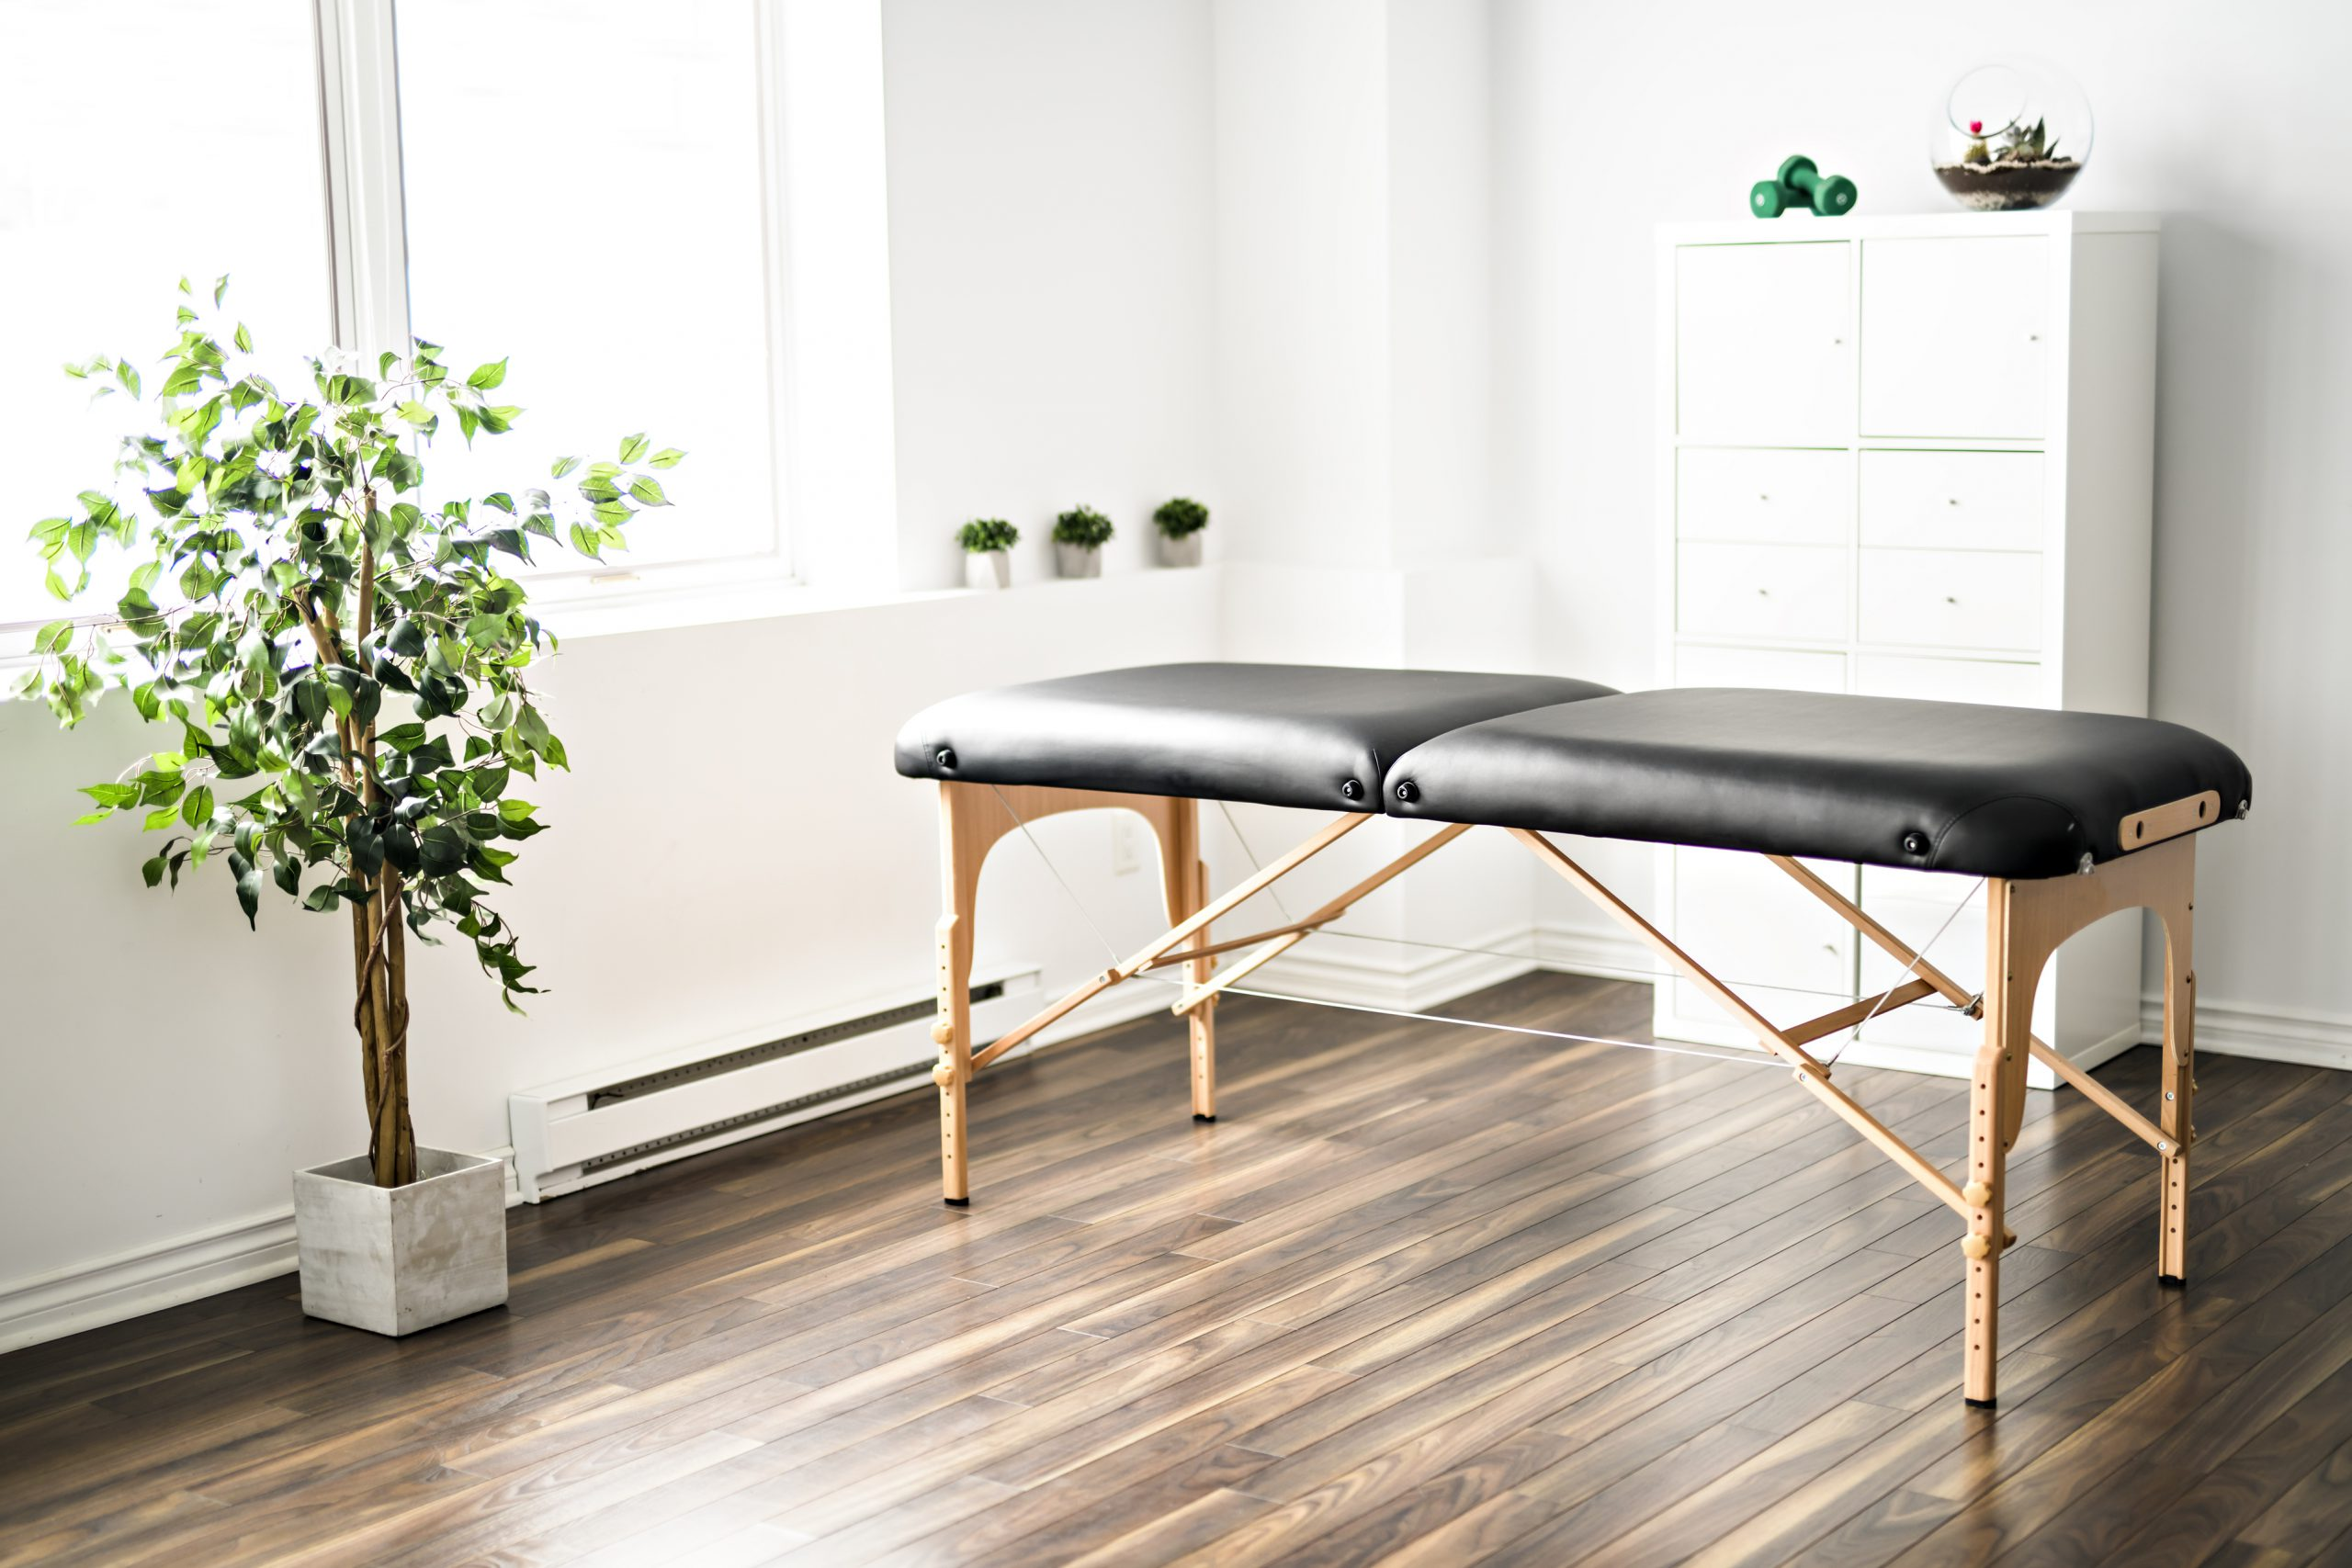 A physiotherapy room with table at work